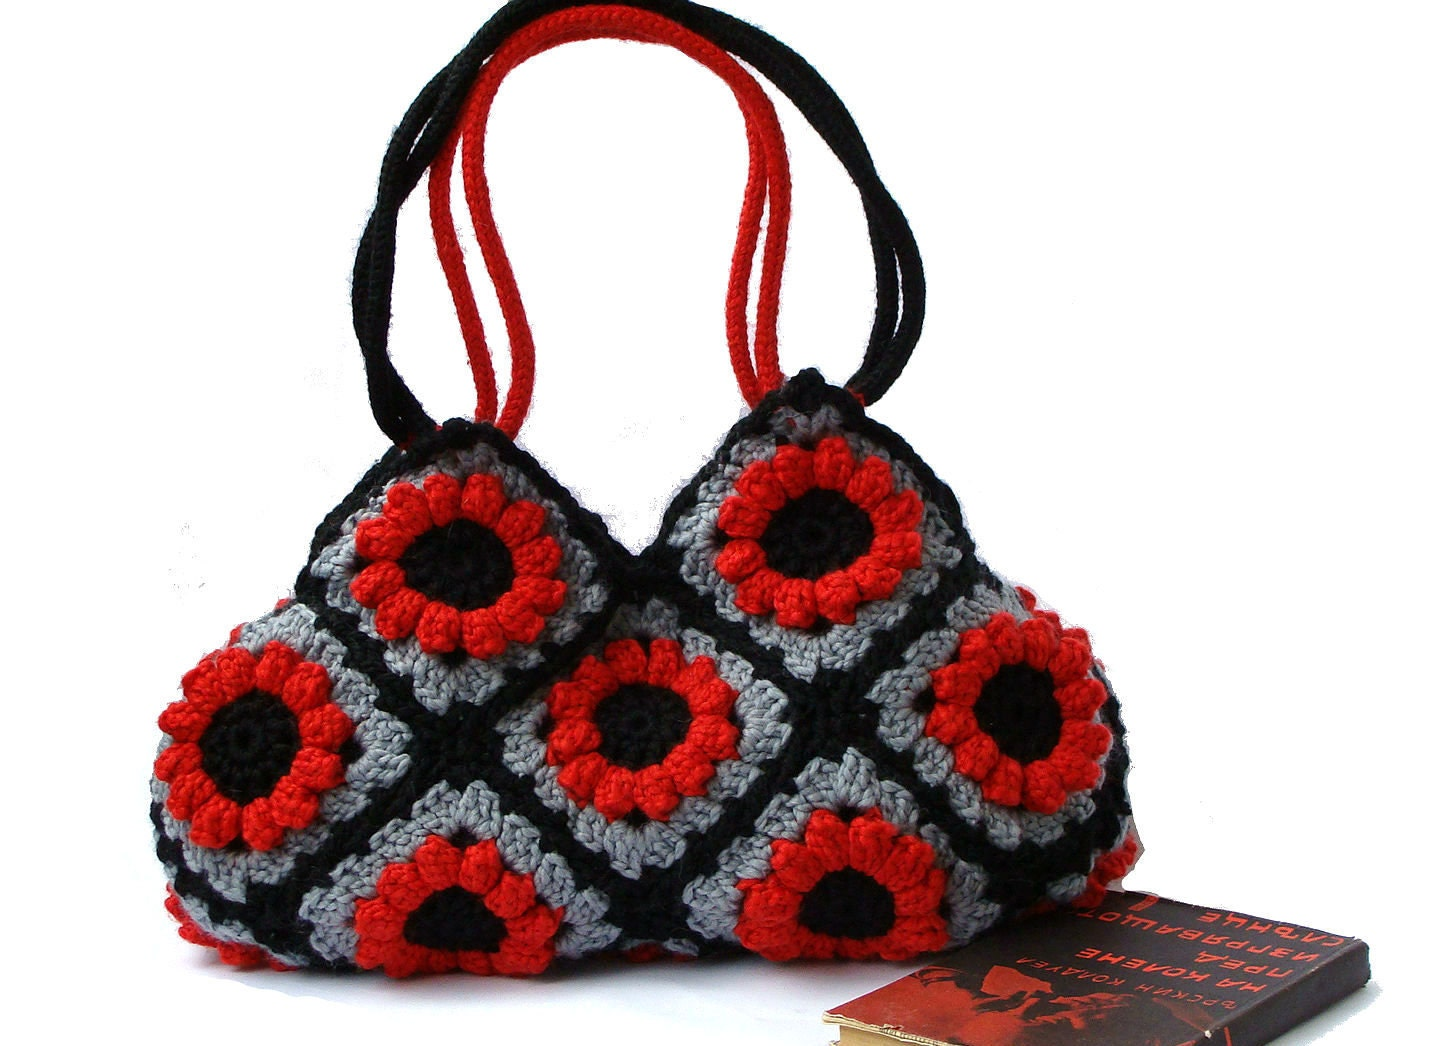 Flower Crochet Bag : Granny crochet red flower handbag crochet hand bag by zolayka